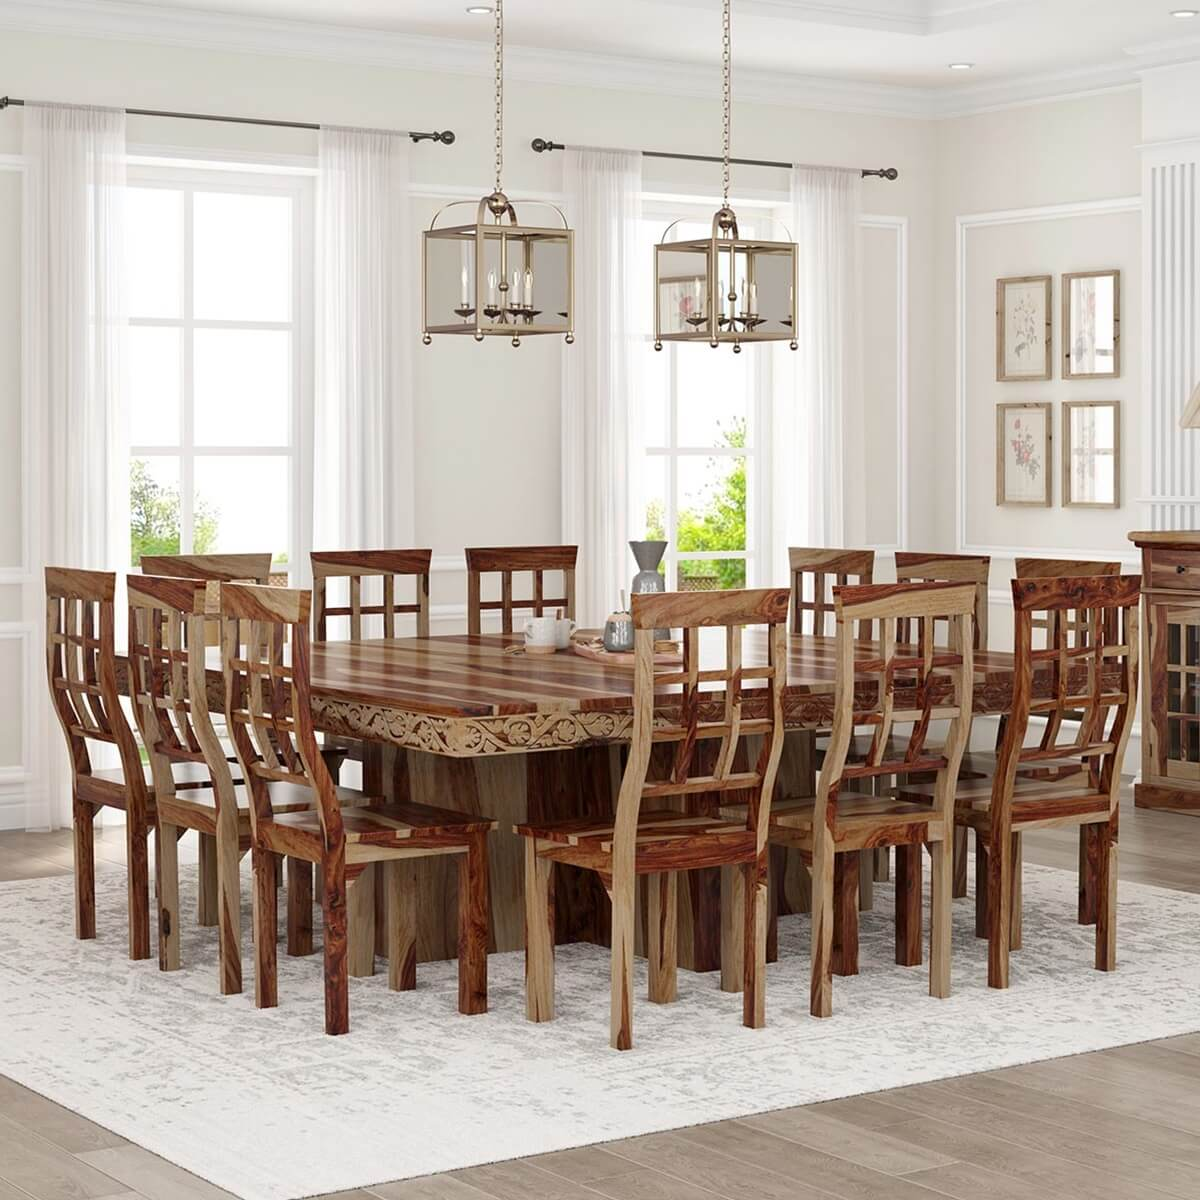 Prime Dallas Ranch Large Square Dining Room Table And Chair Set For 12 Download Free Architecture Designs Rallybritishbridgeorg